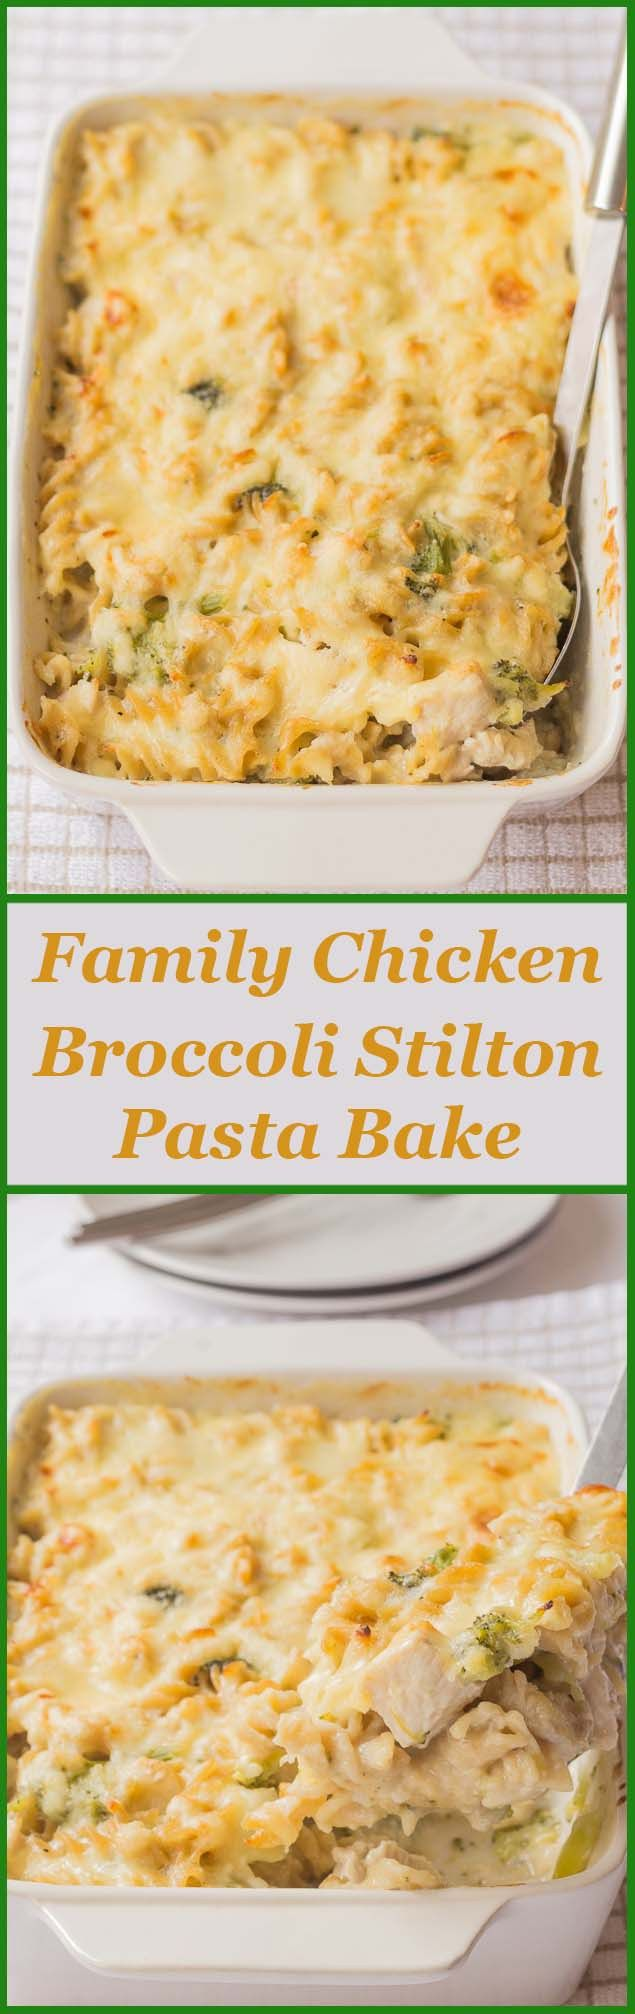 Simple, healthy, low cost, quick and back to basics. It's what I'm all about with this delicious new family chicken broccoli Stilton pasta bake.